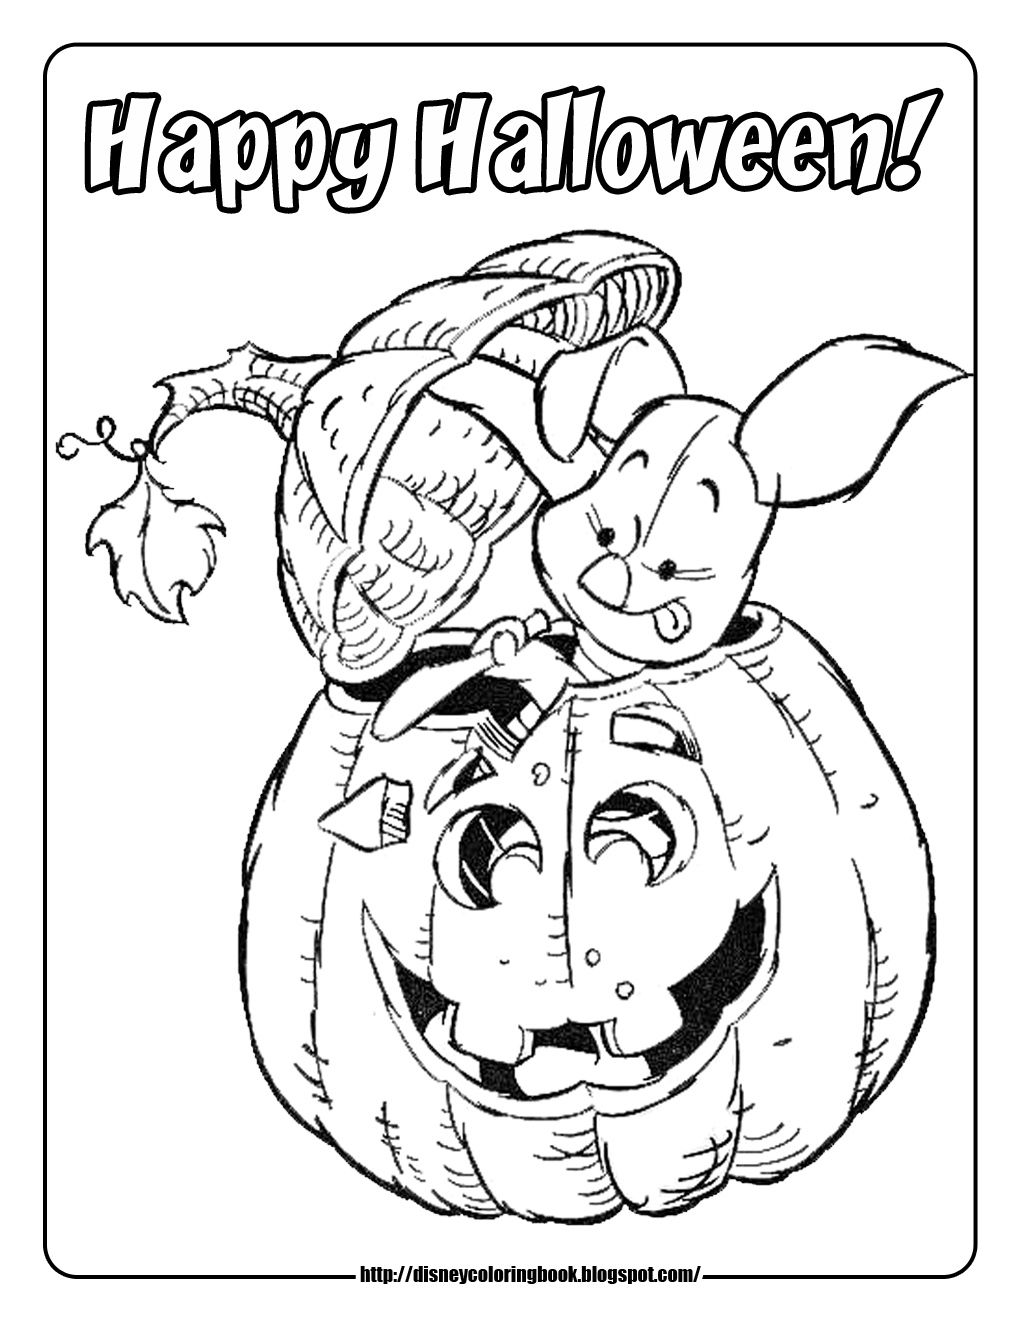 halloween coloring pages piglet carving pumpkin halloween color